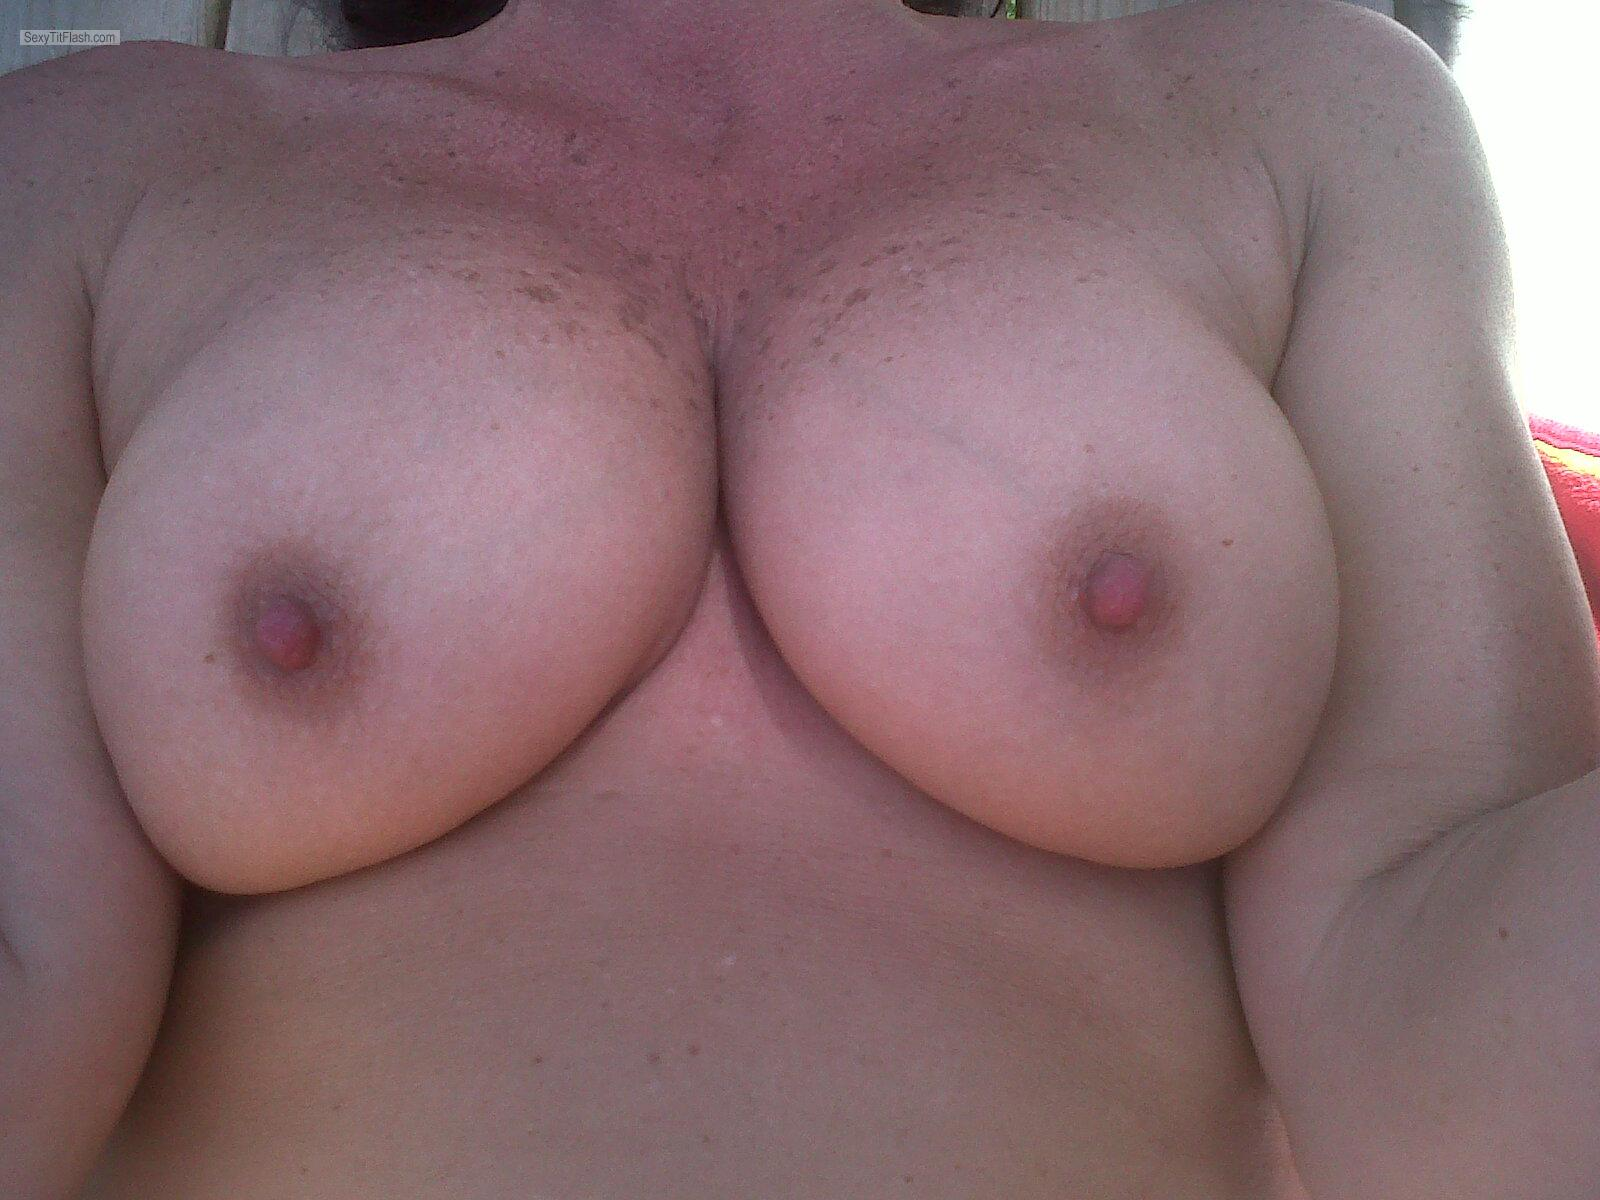 Tit Flash: Wife's Big Tits - Sweet Tits from Canada